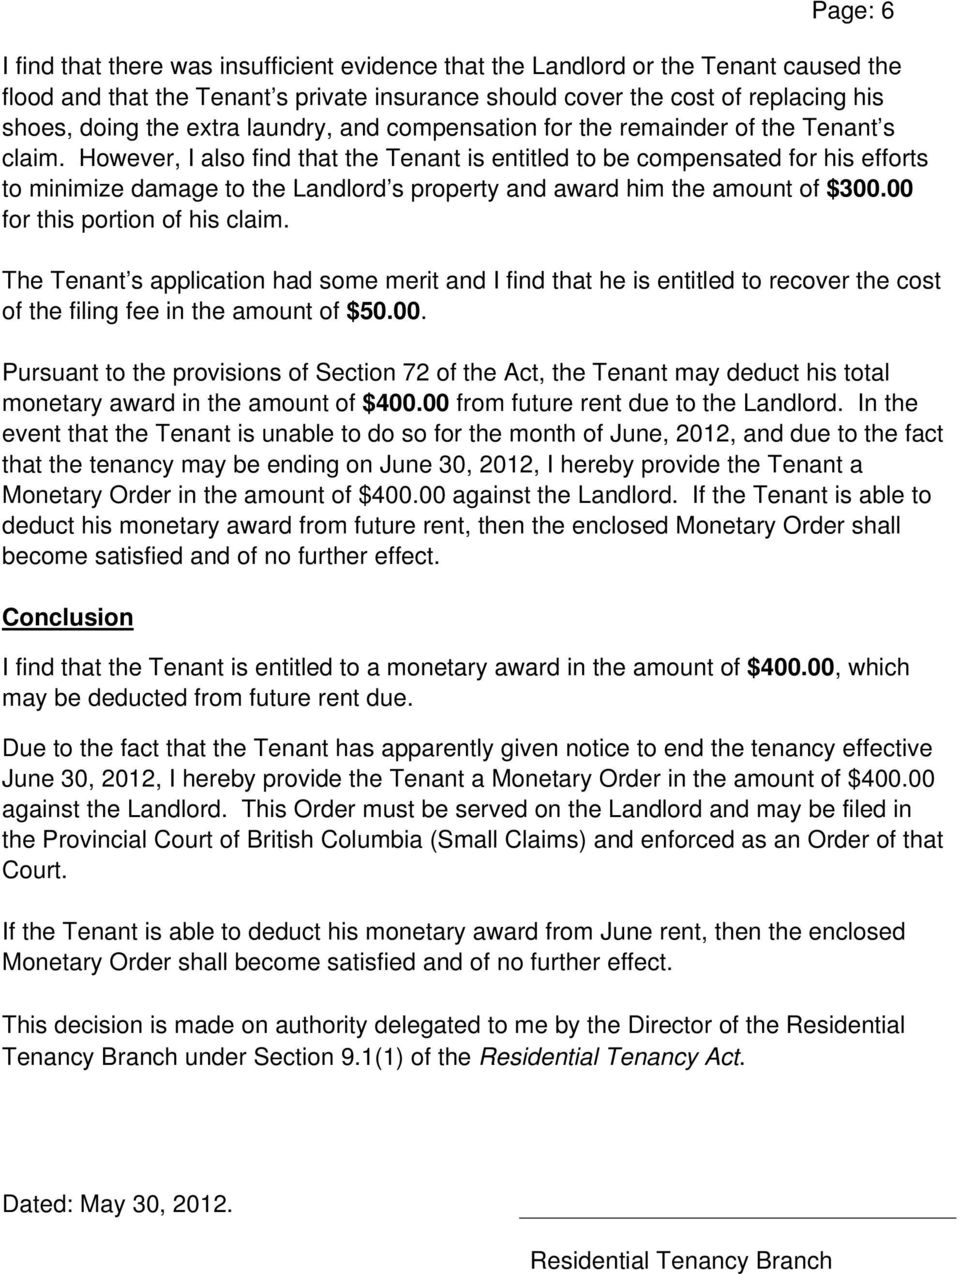 However, I also find that the Tenant is entitled to be compensated for his efforts to minimize damage to the Landlord s property and award him the amount of $300.00 for this portion of his claim.